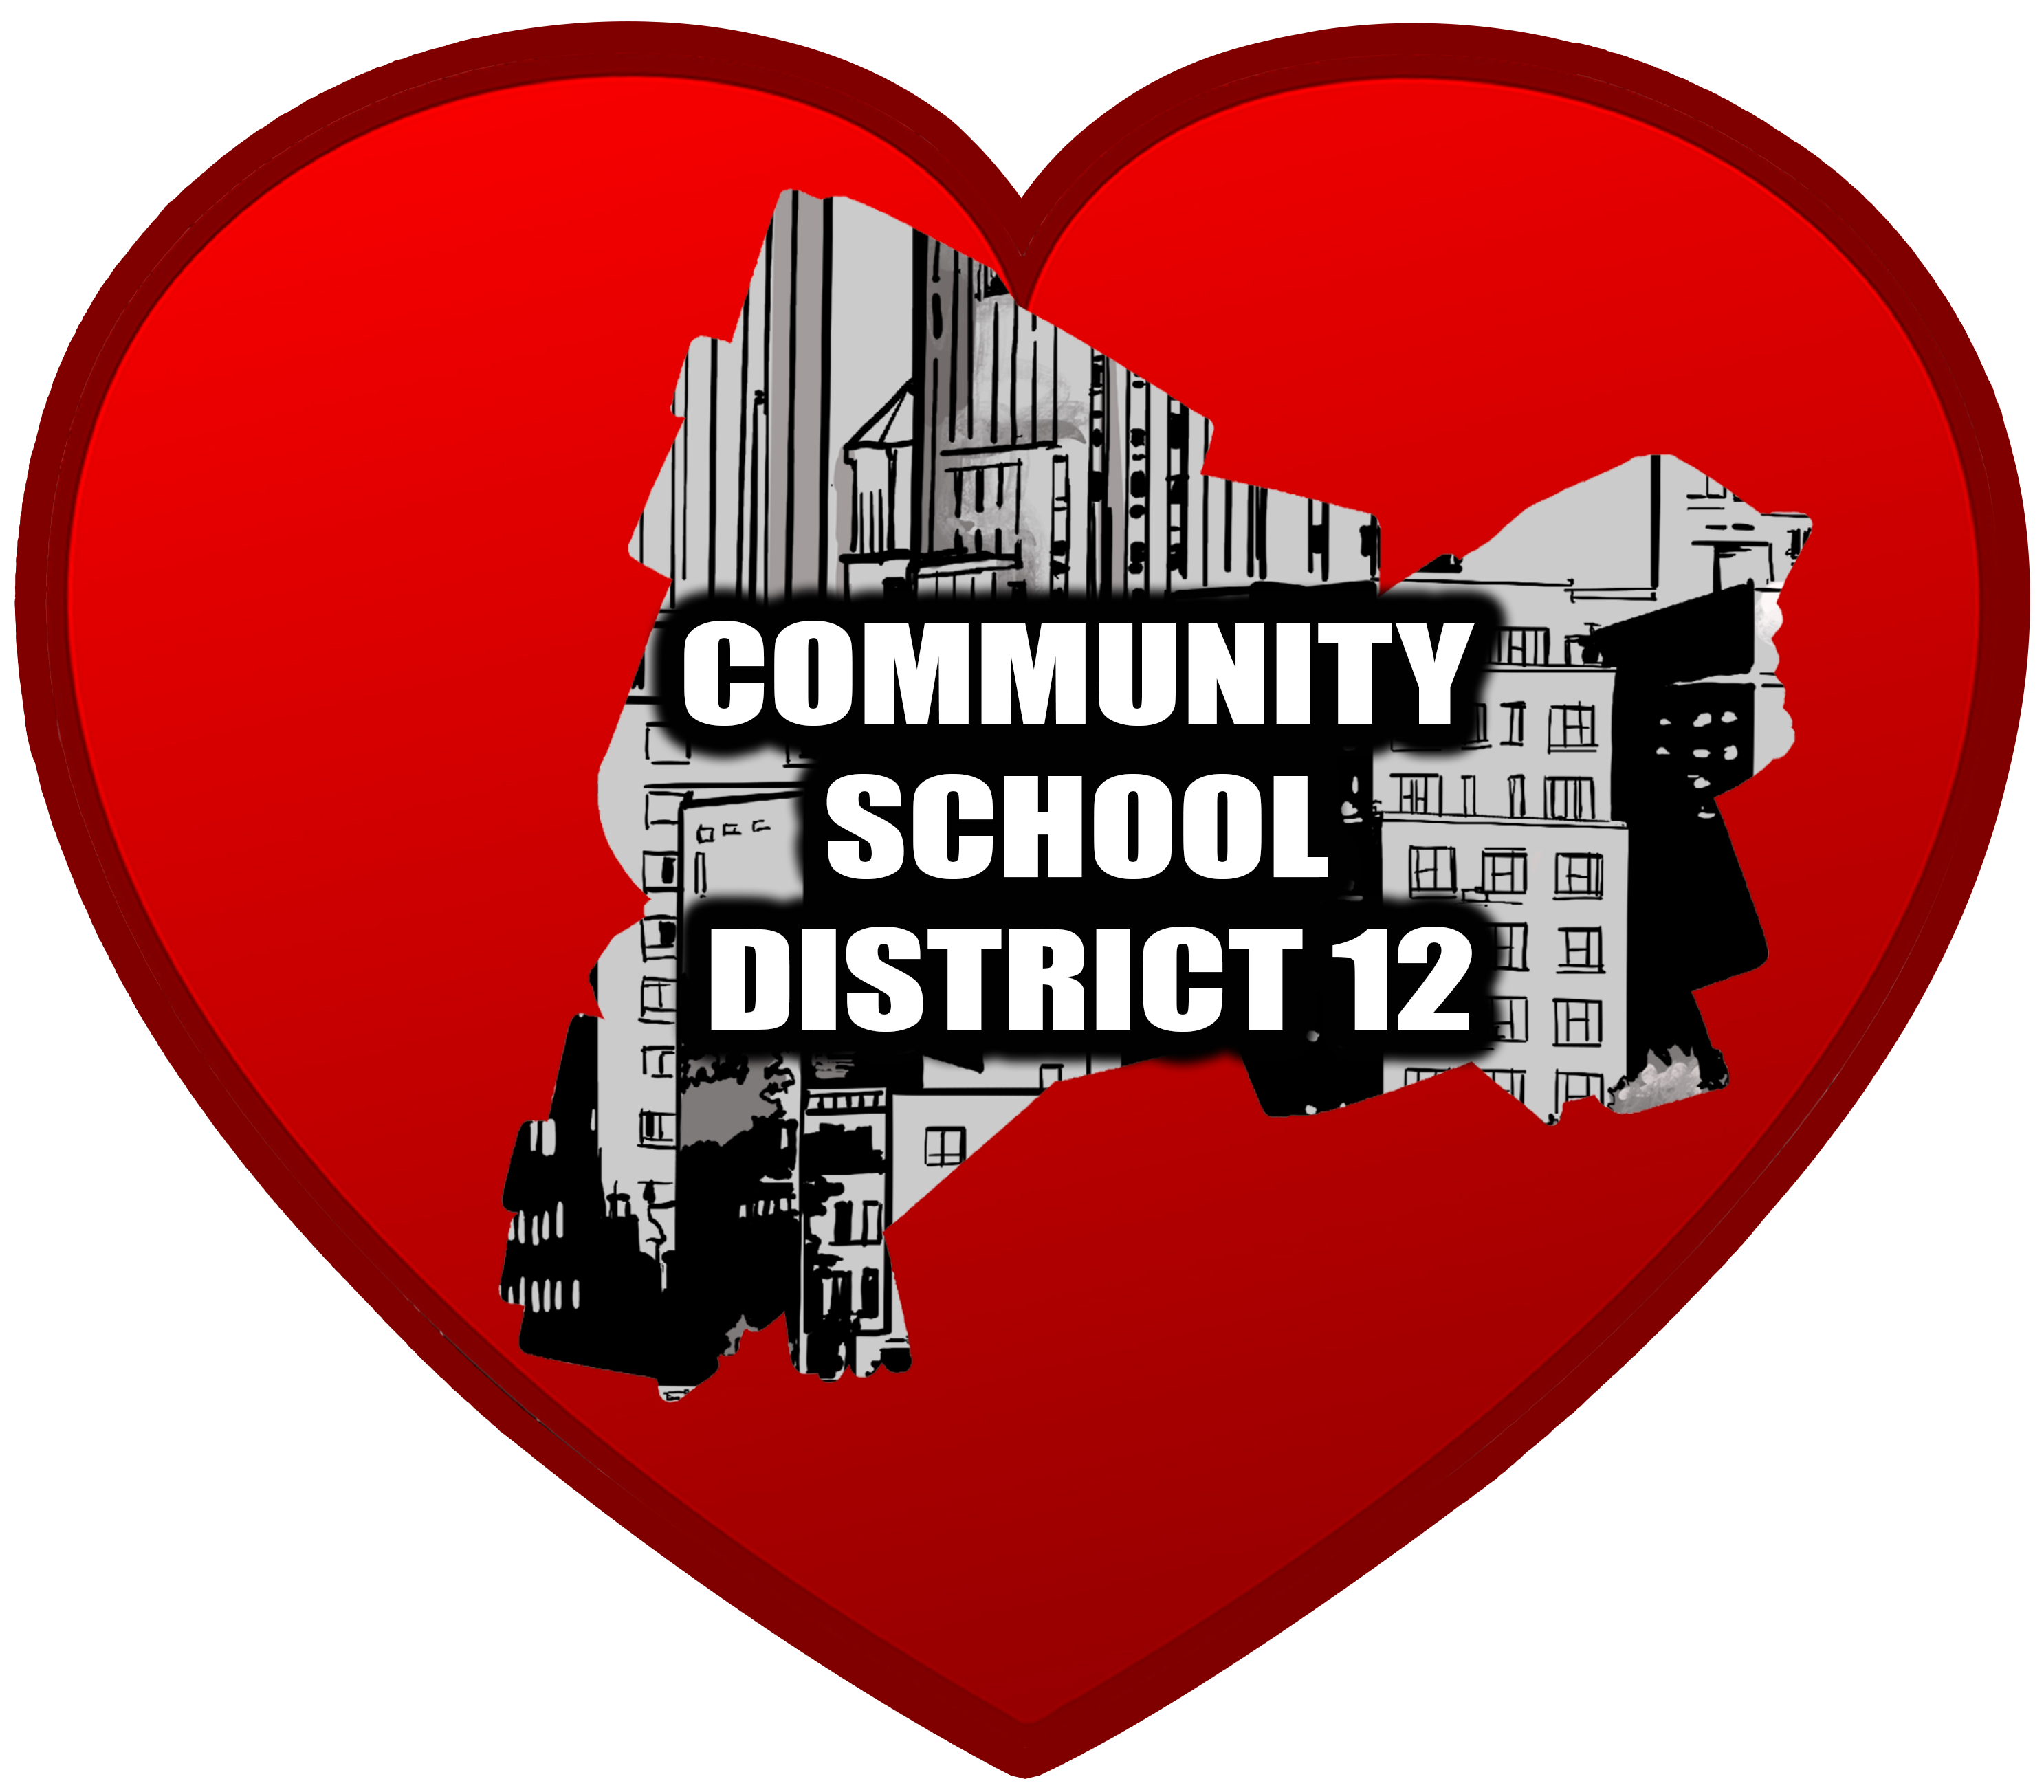 Community School District 12 Home Page